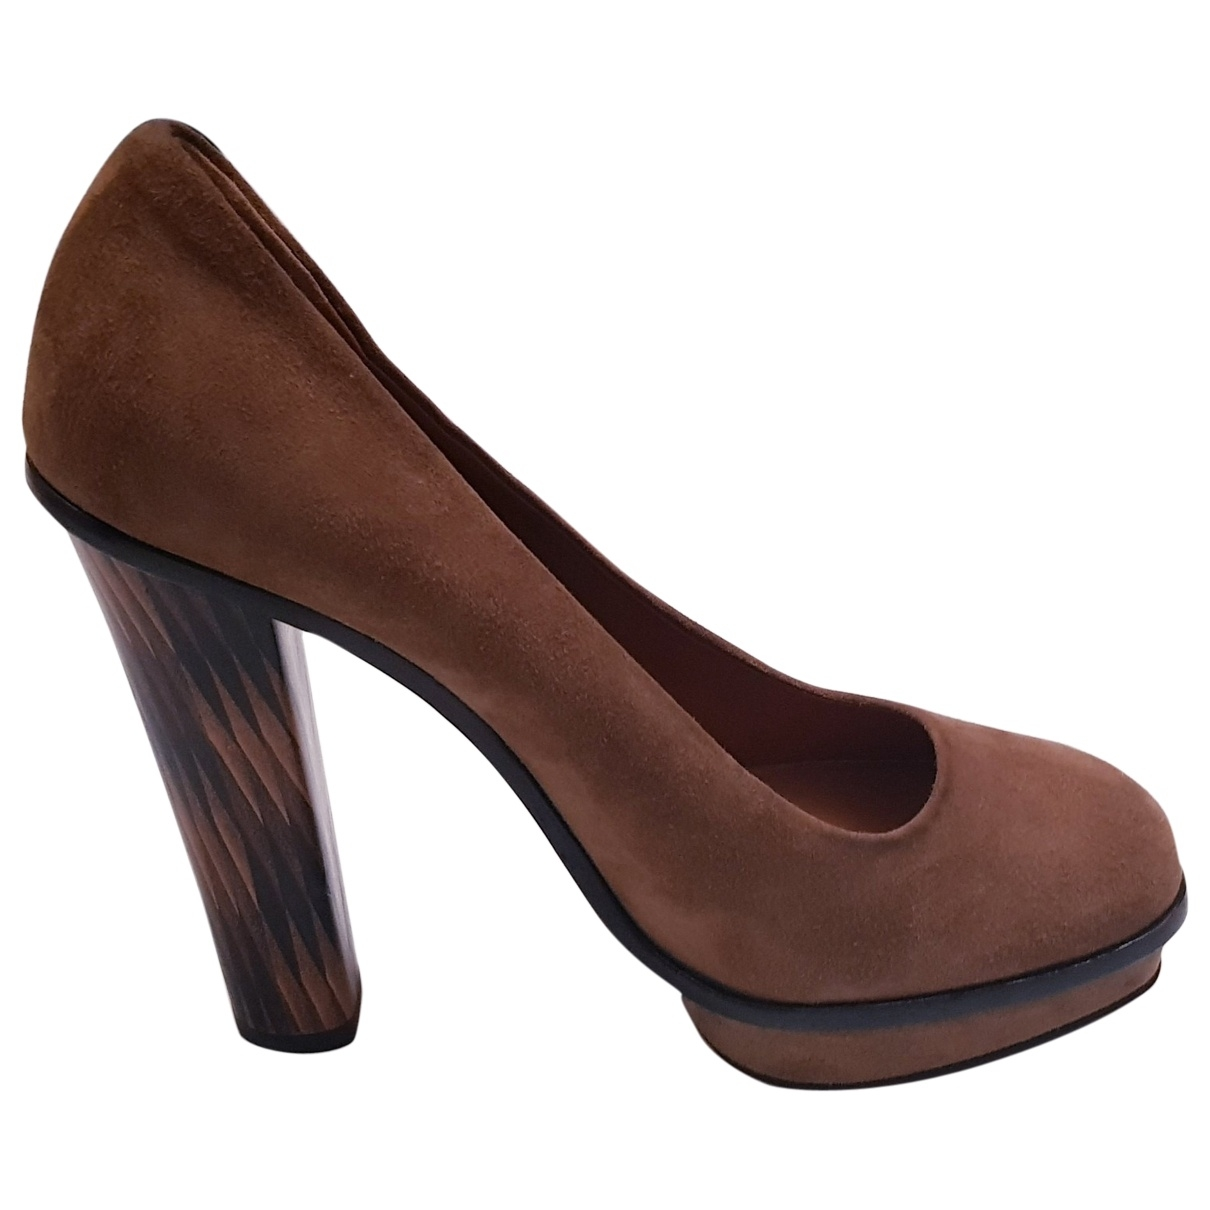 Fendi \N Pumps in  Kamel Veloursleder